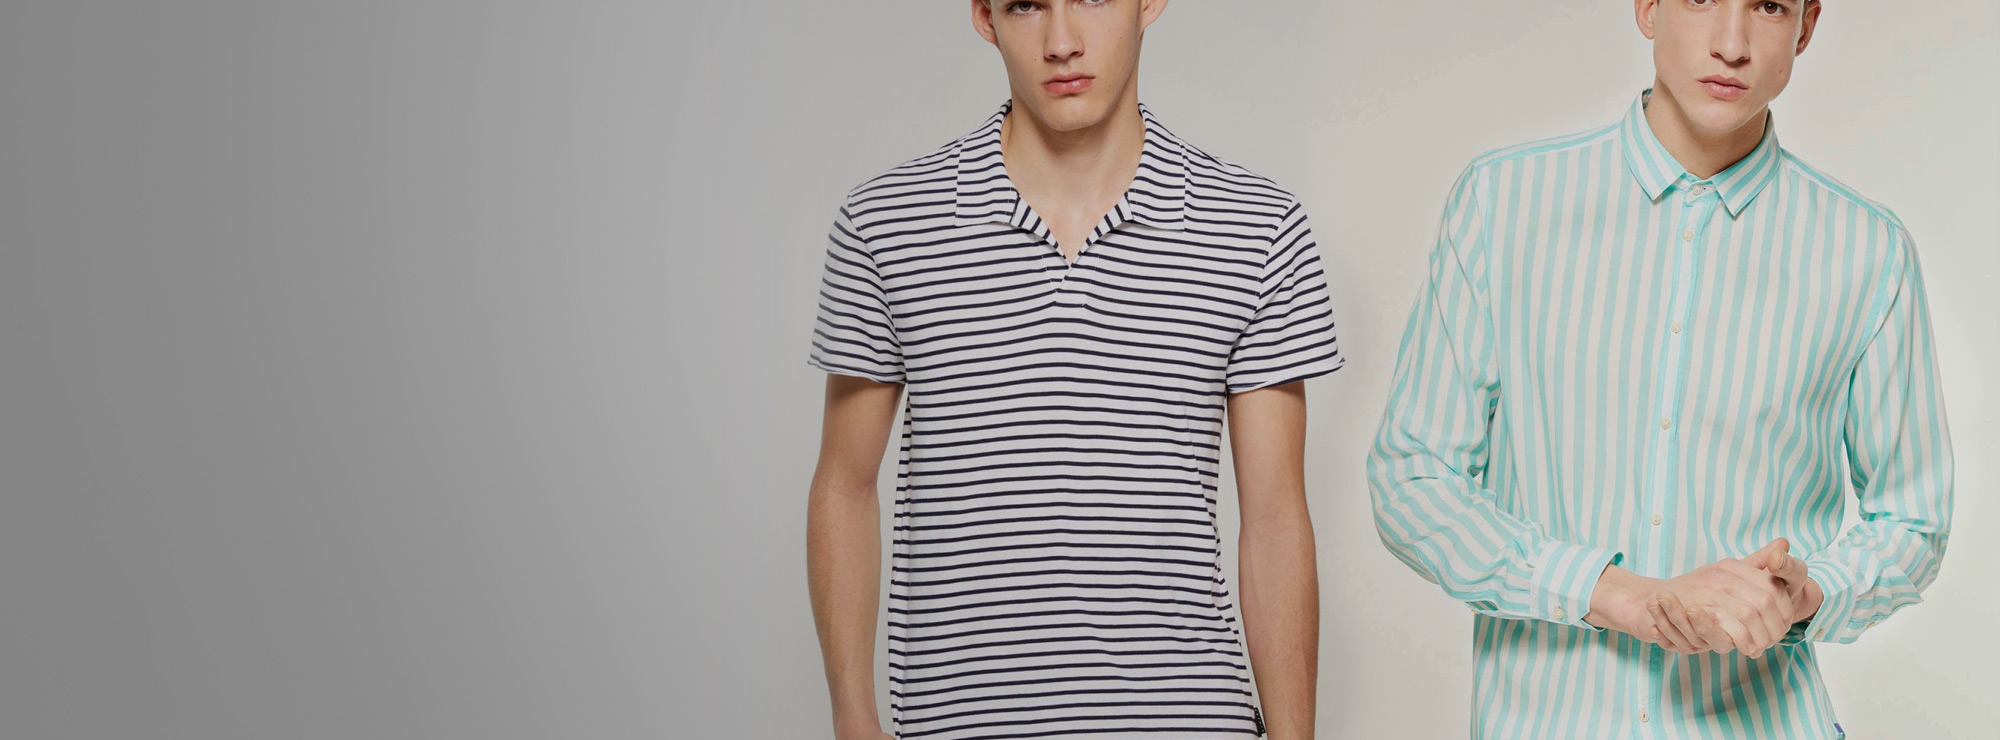 Stripe your style